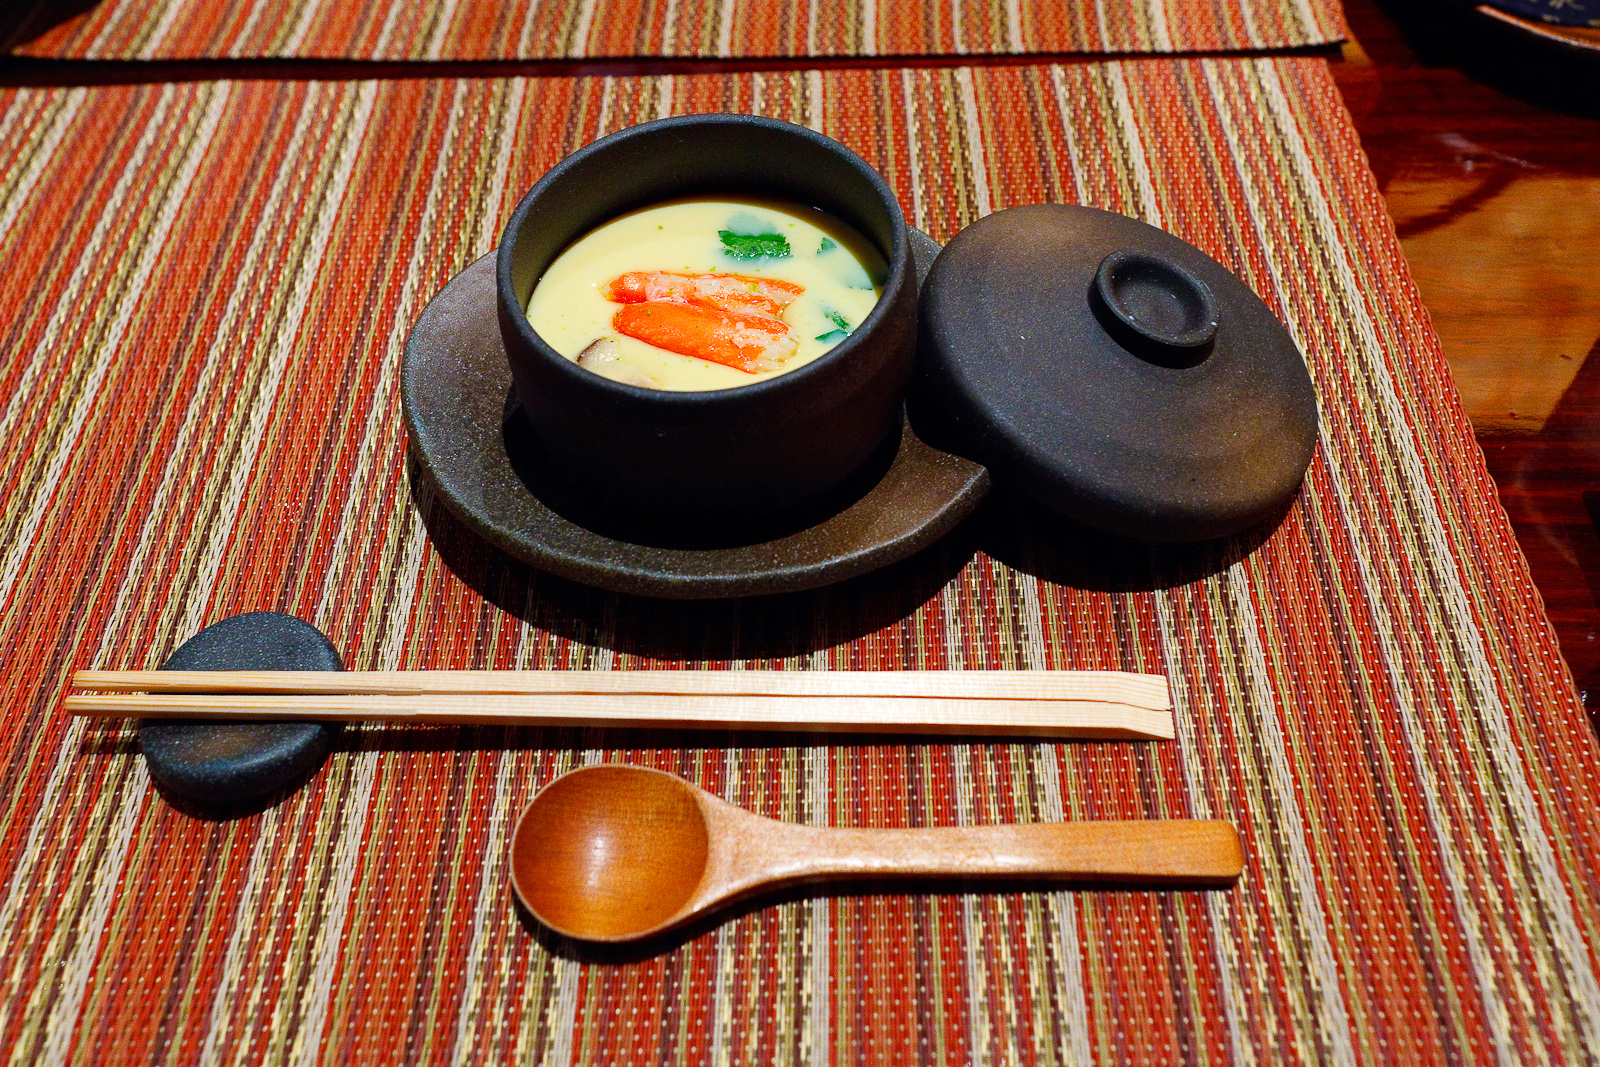 Chawanmushi, steamed egg custard cup with seafood, shrimp, crab, mochi, and vegetables ($10)